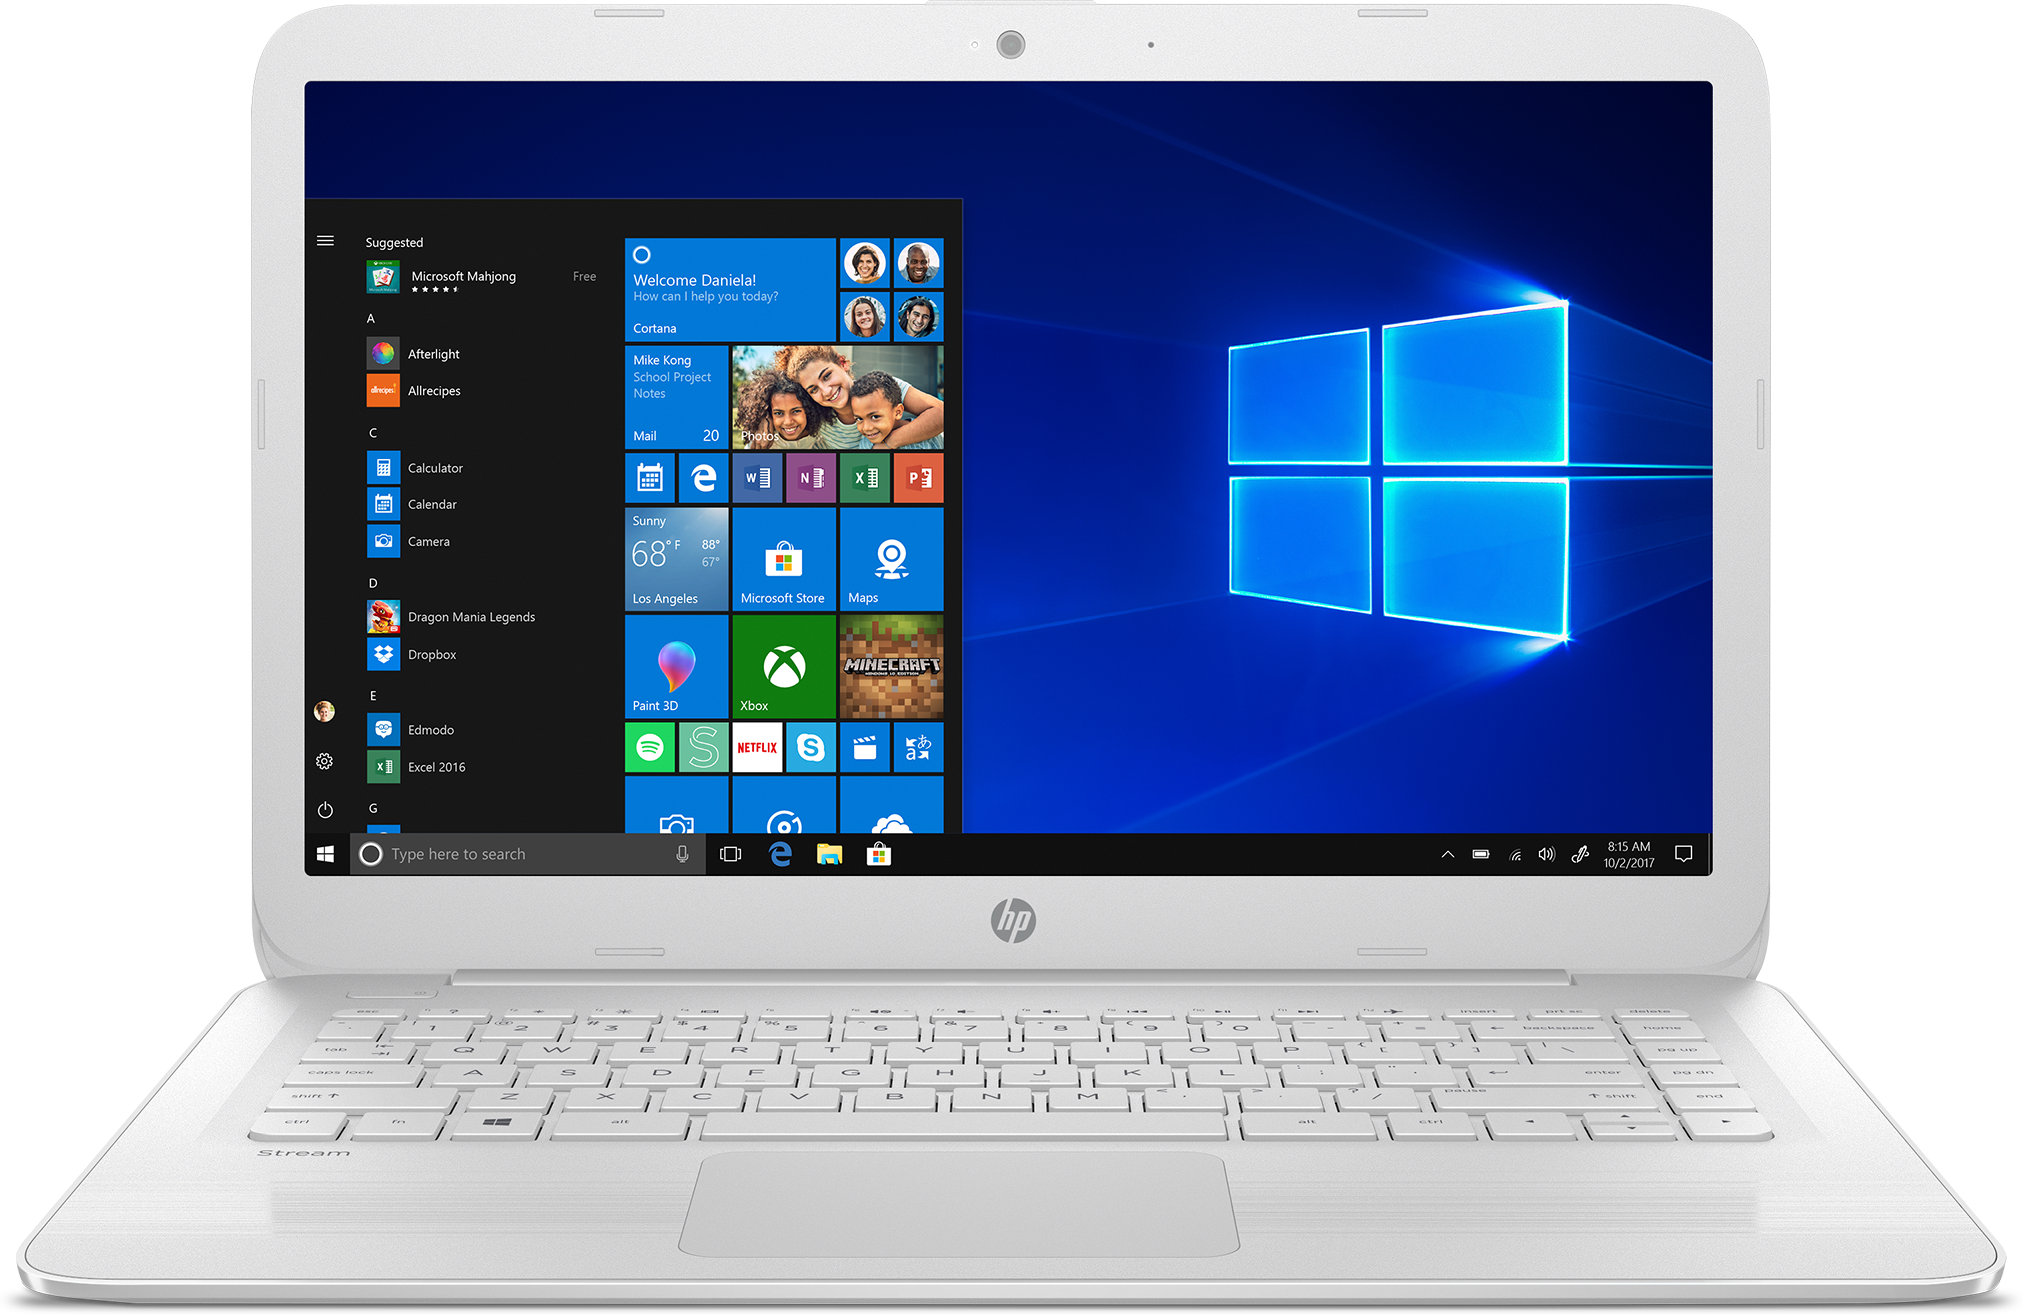 Front view of the HP Stream Laptop